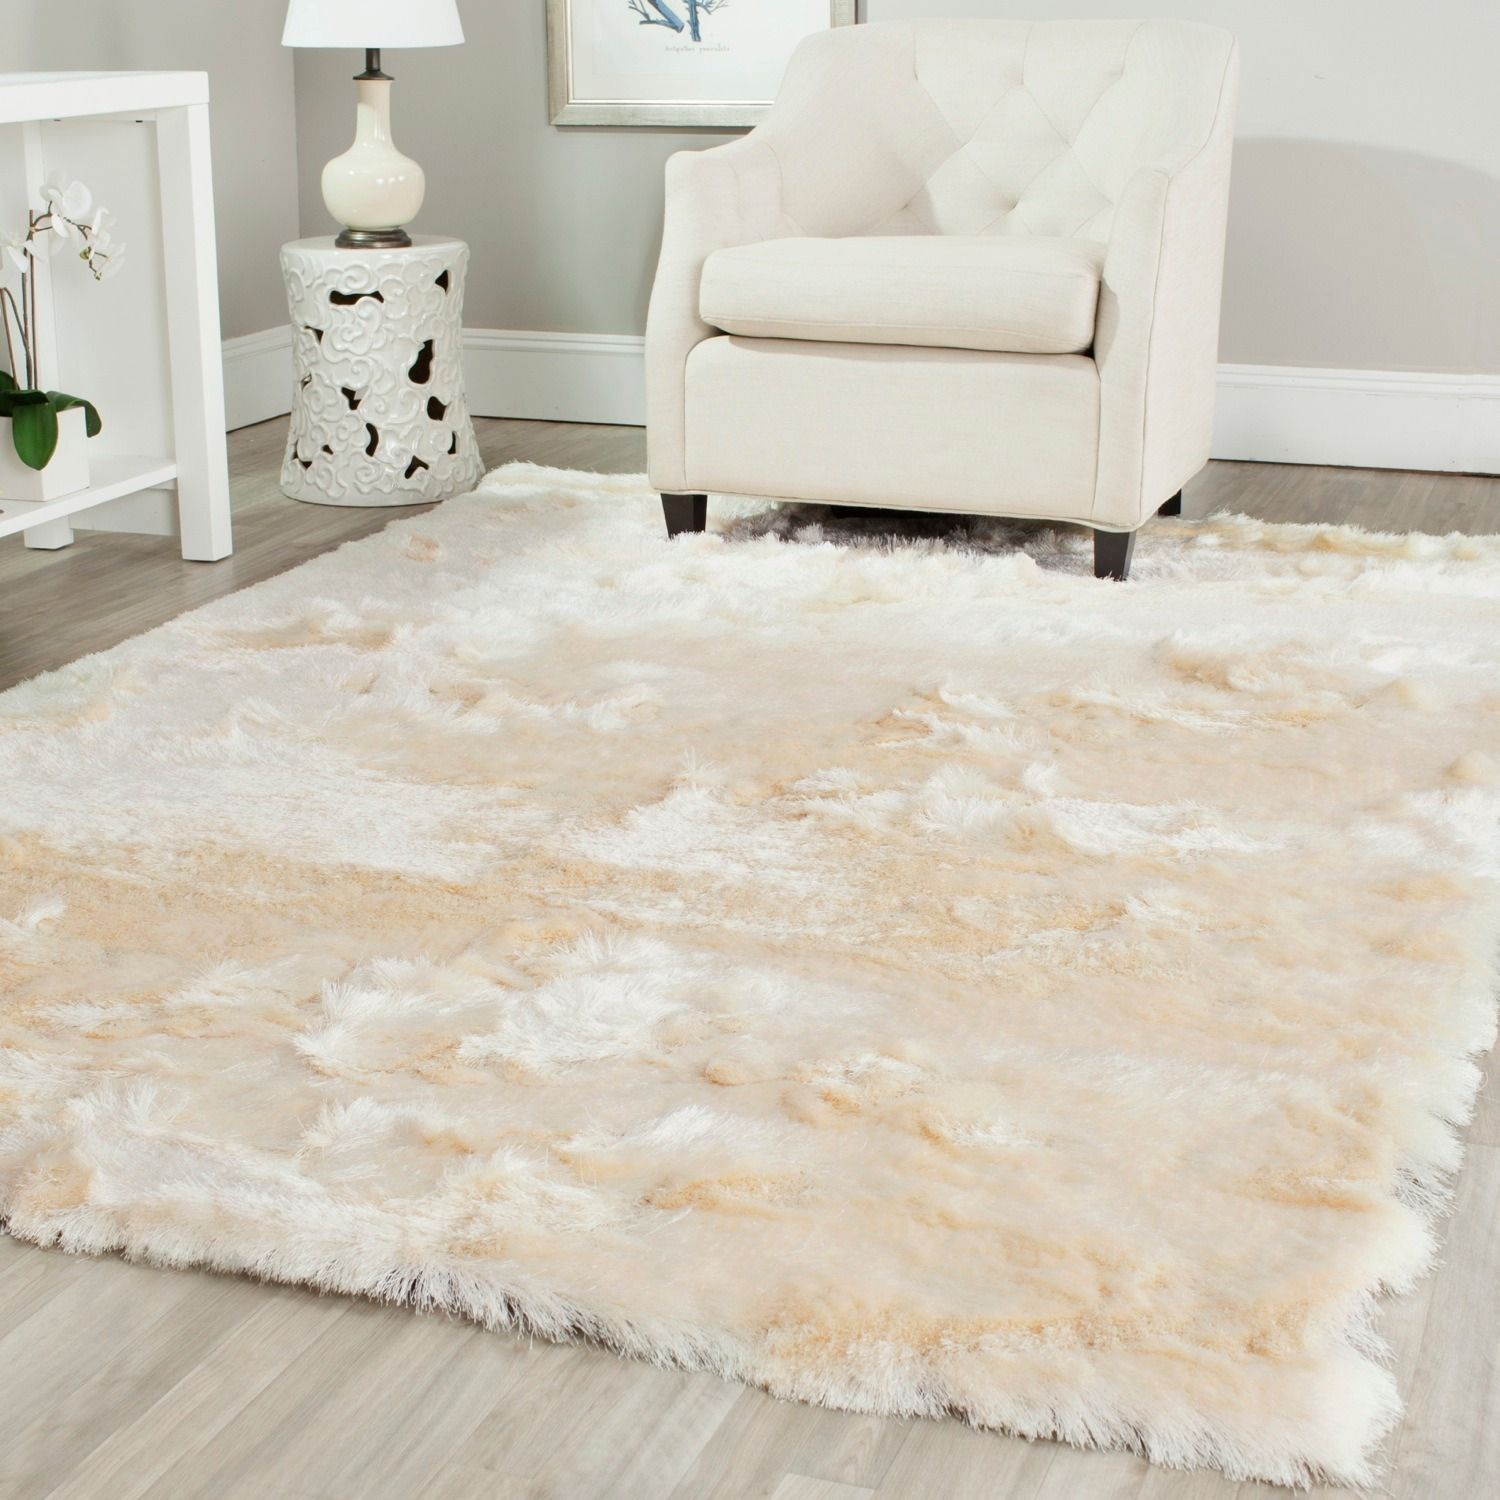 white safavieh pure grey south and moroccan com home rug interior rugs collection beach shag imagination ivory highest amazon